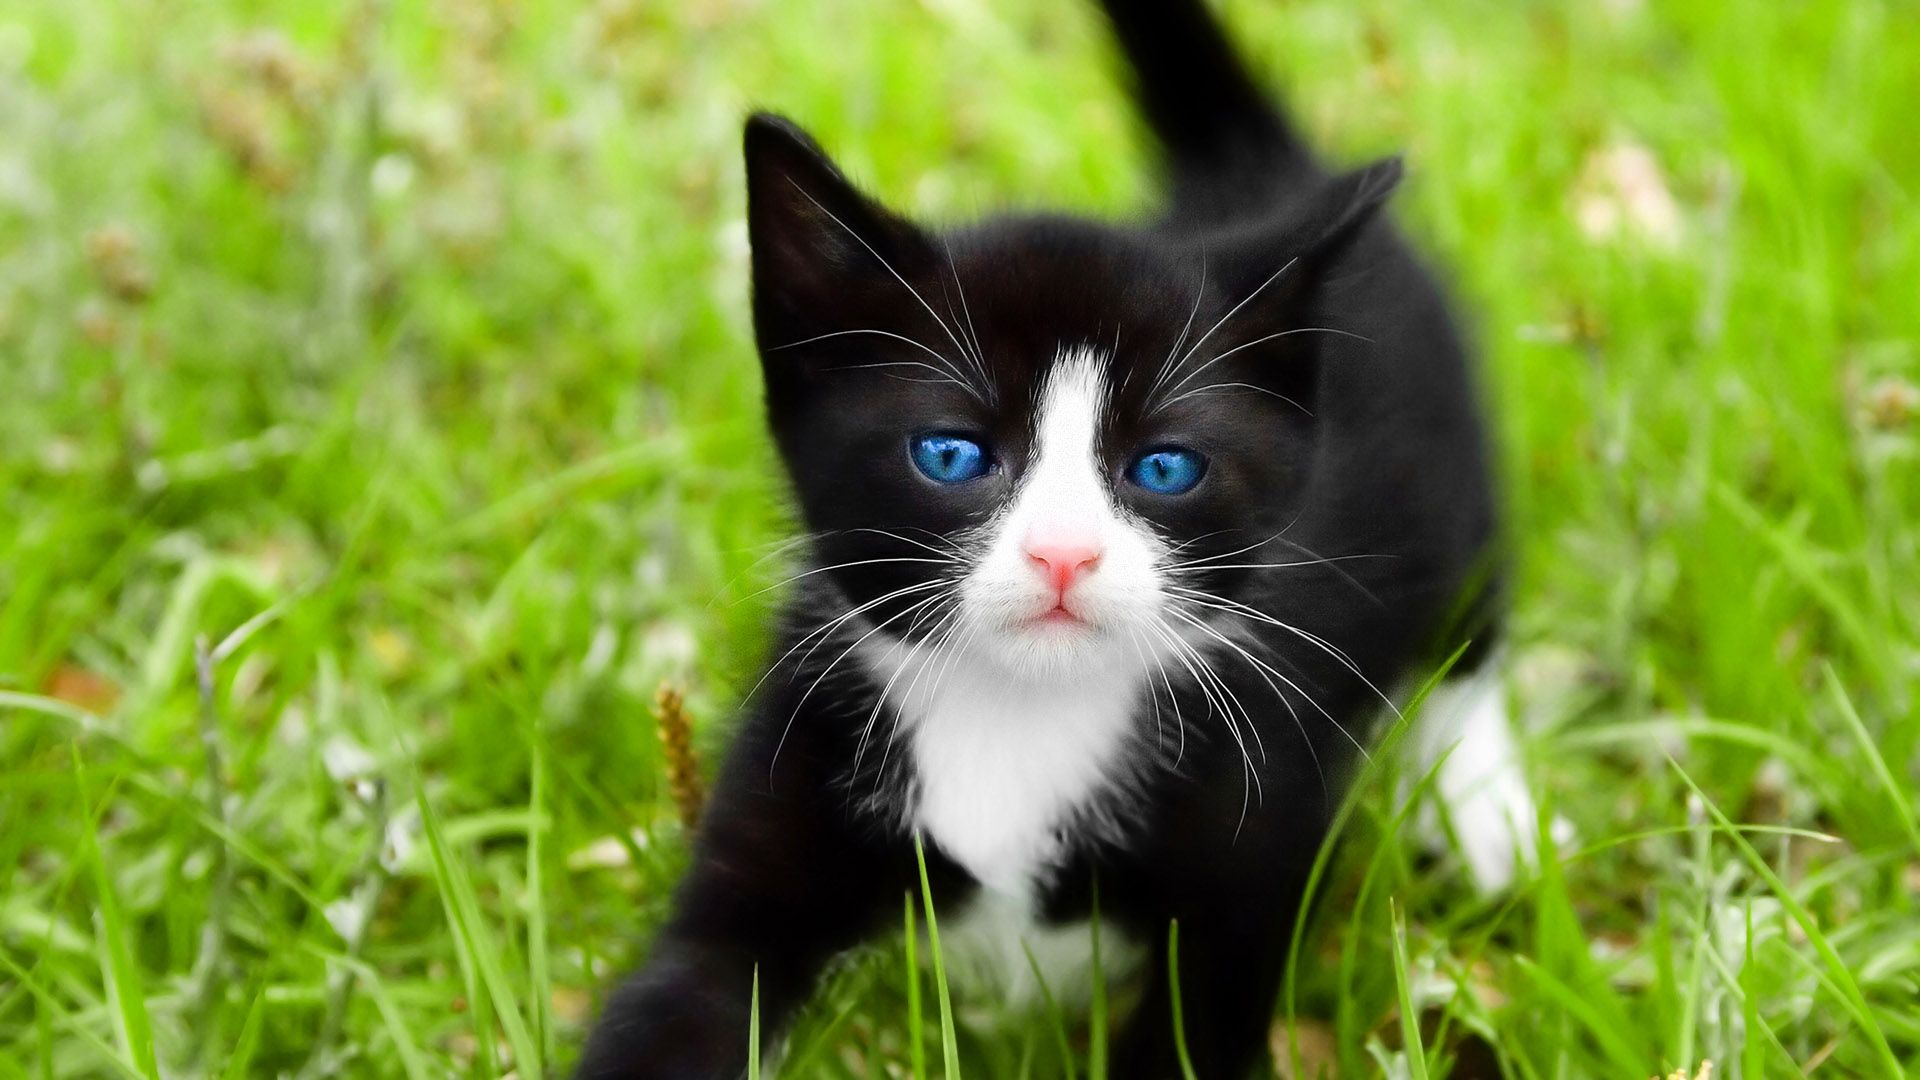 Black Cats With Blue Eyes wallpaper Kittens cutest